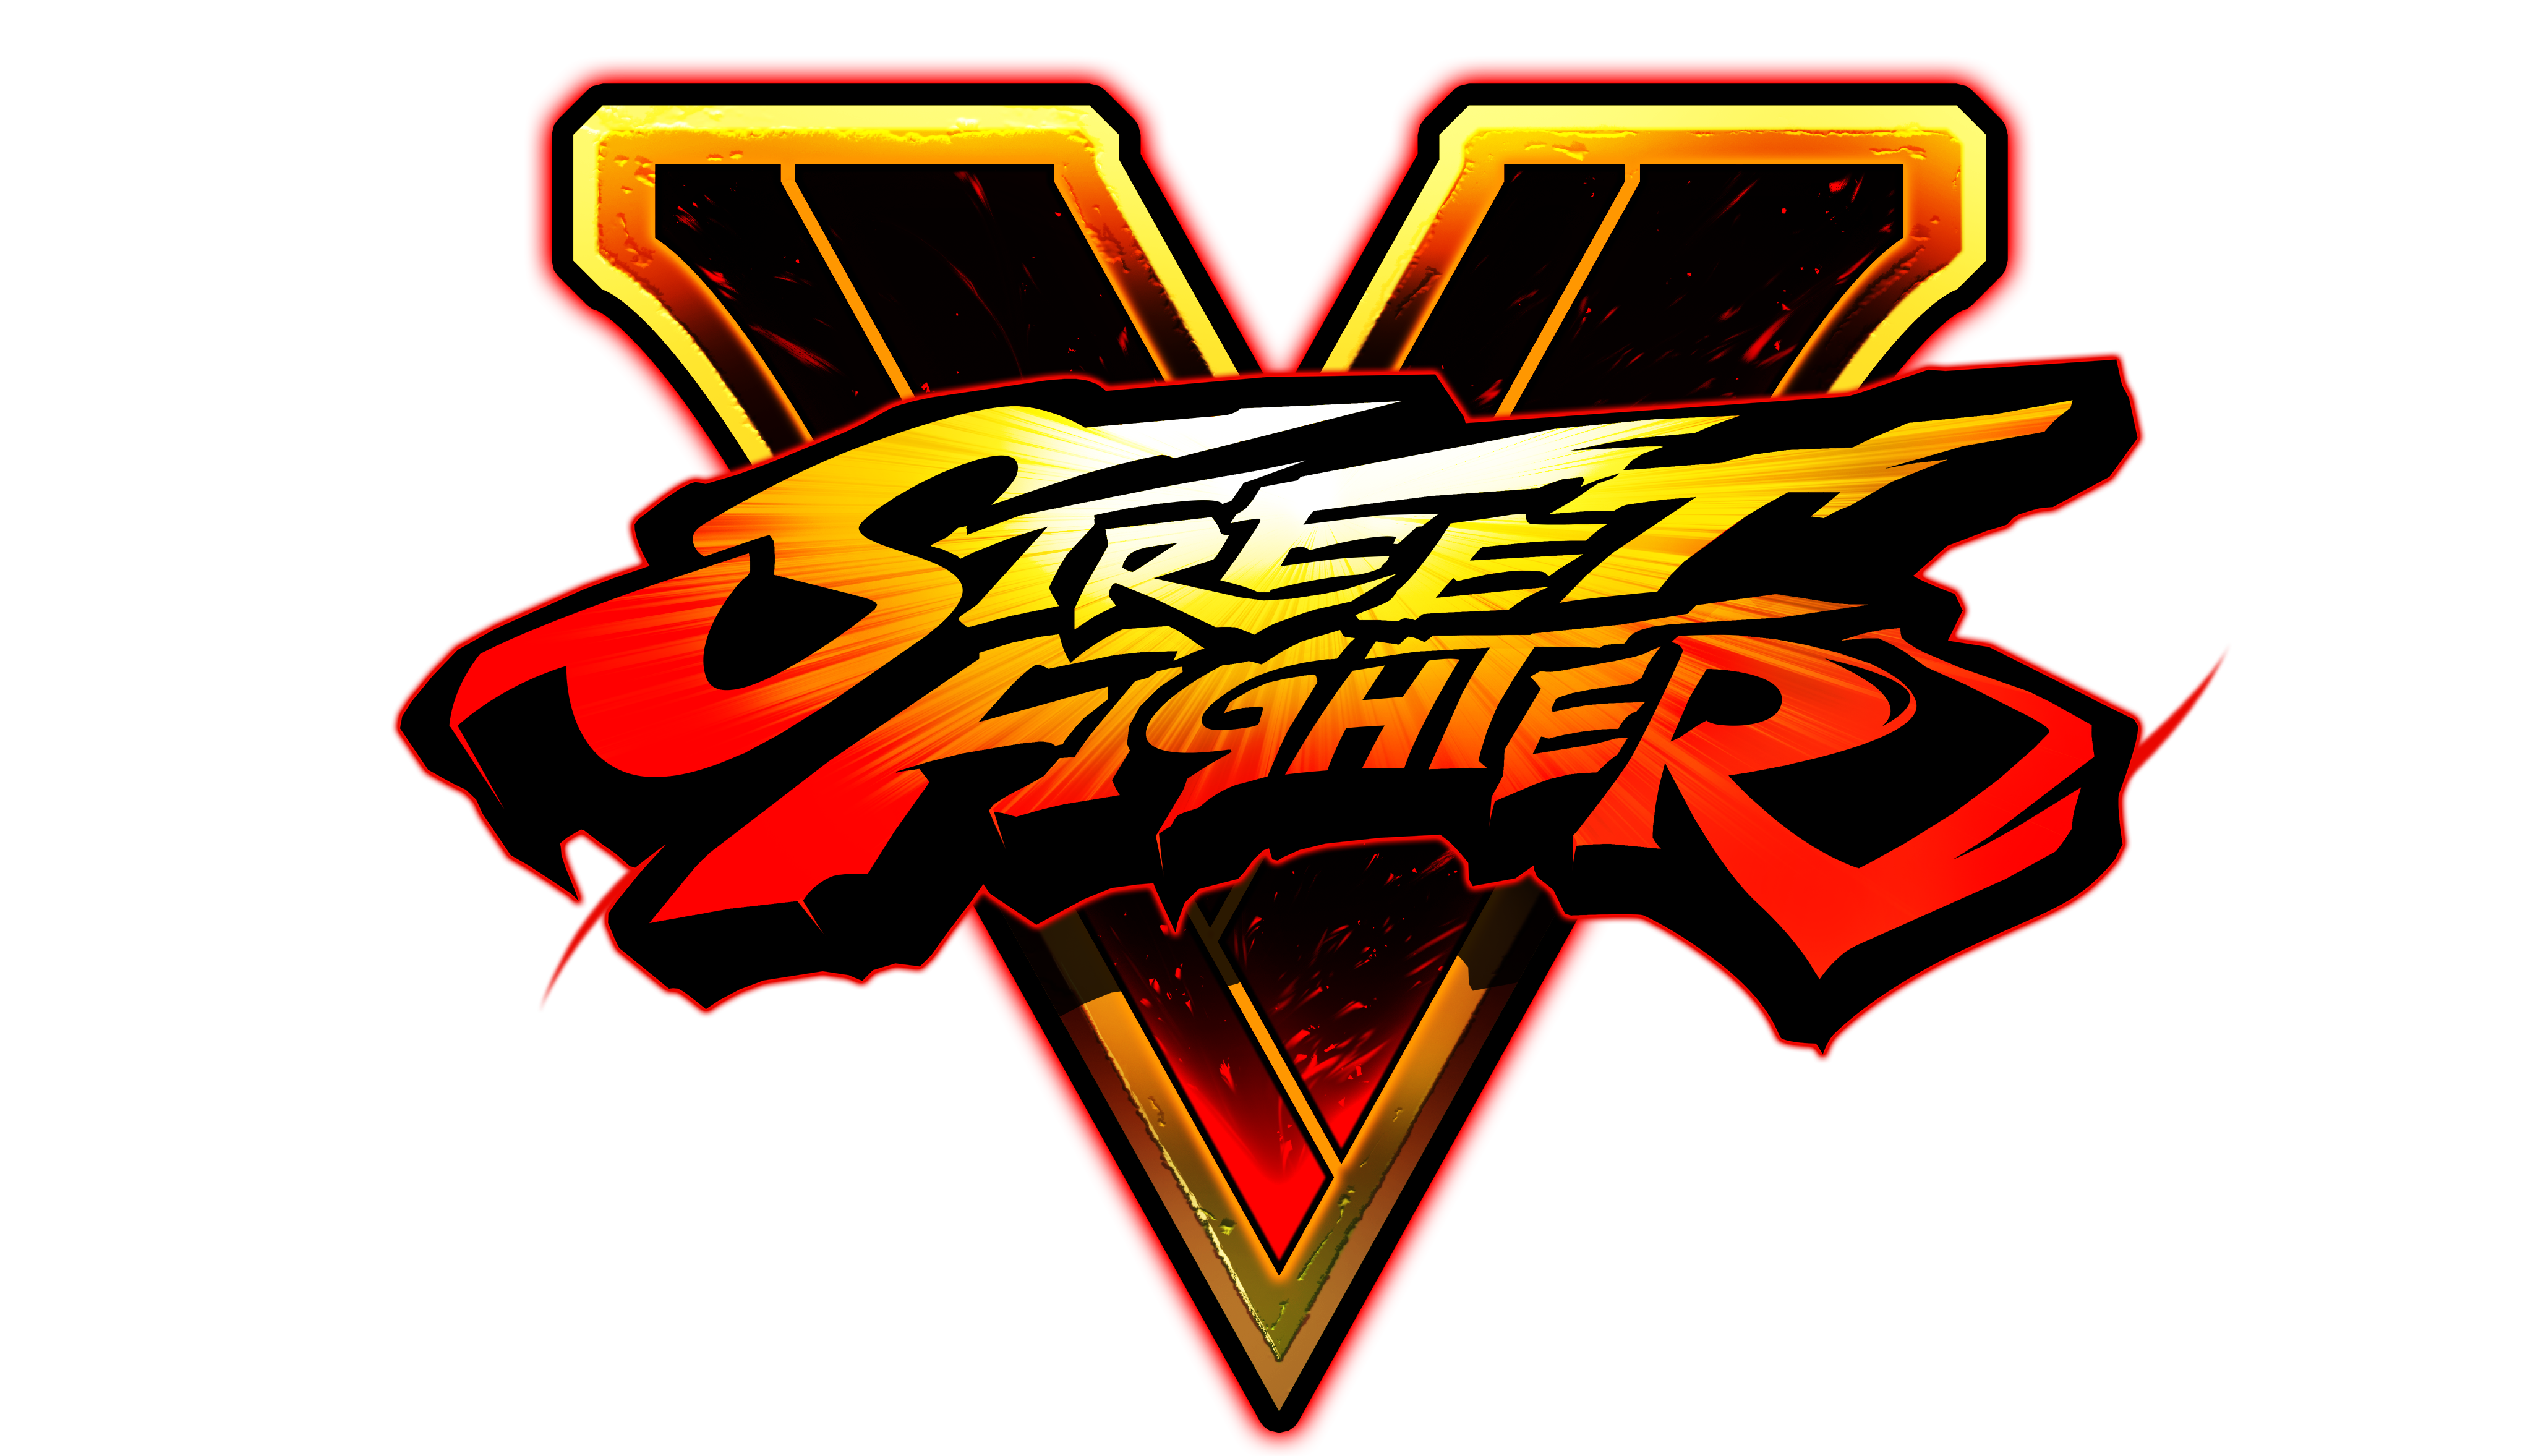 Street fighter v logo png. Whats with the sub